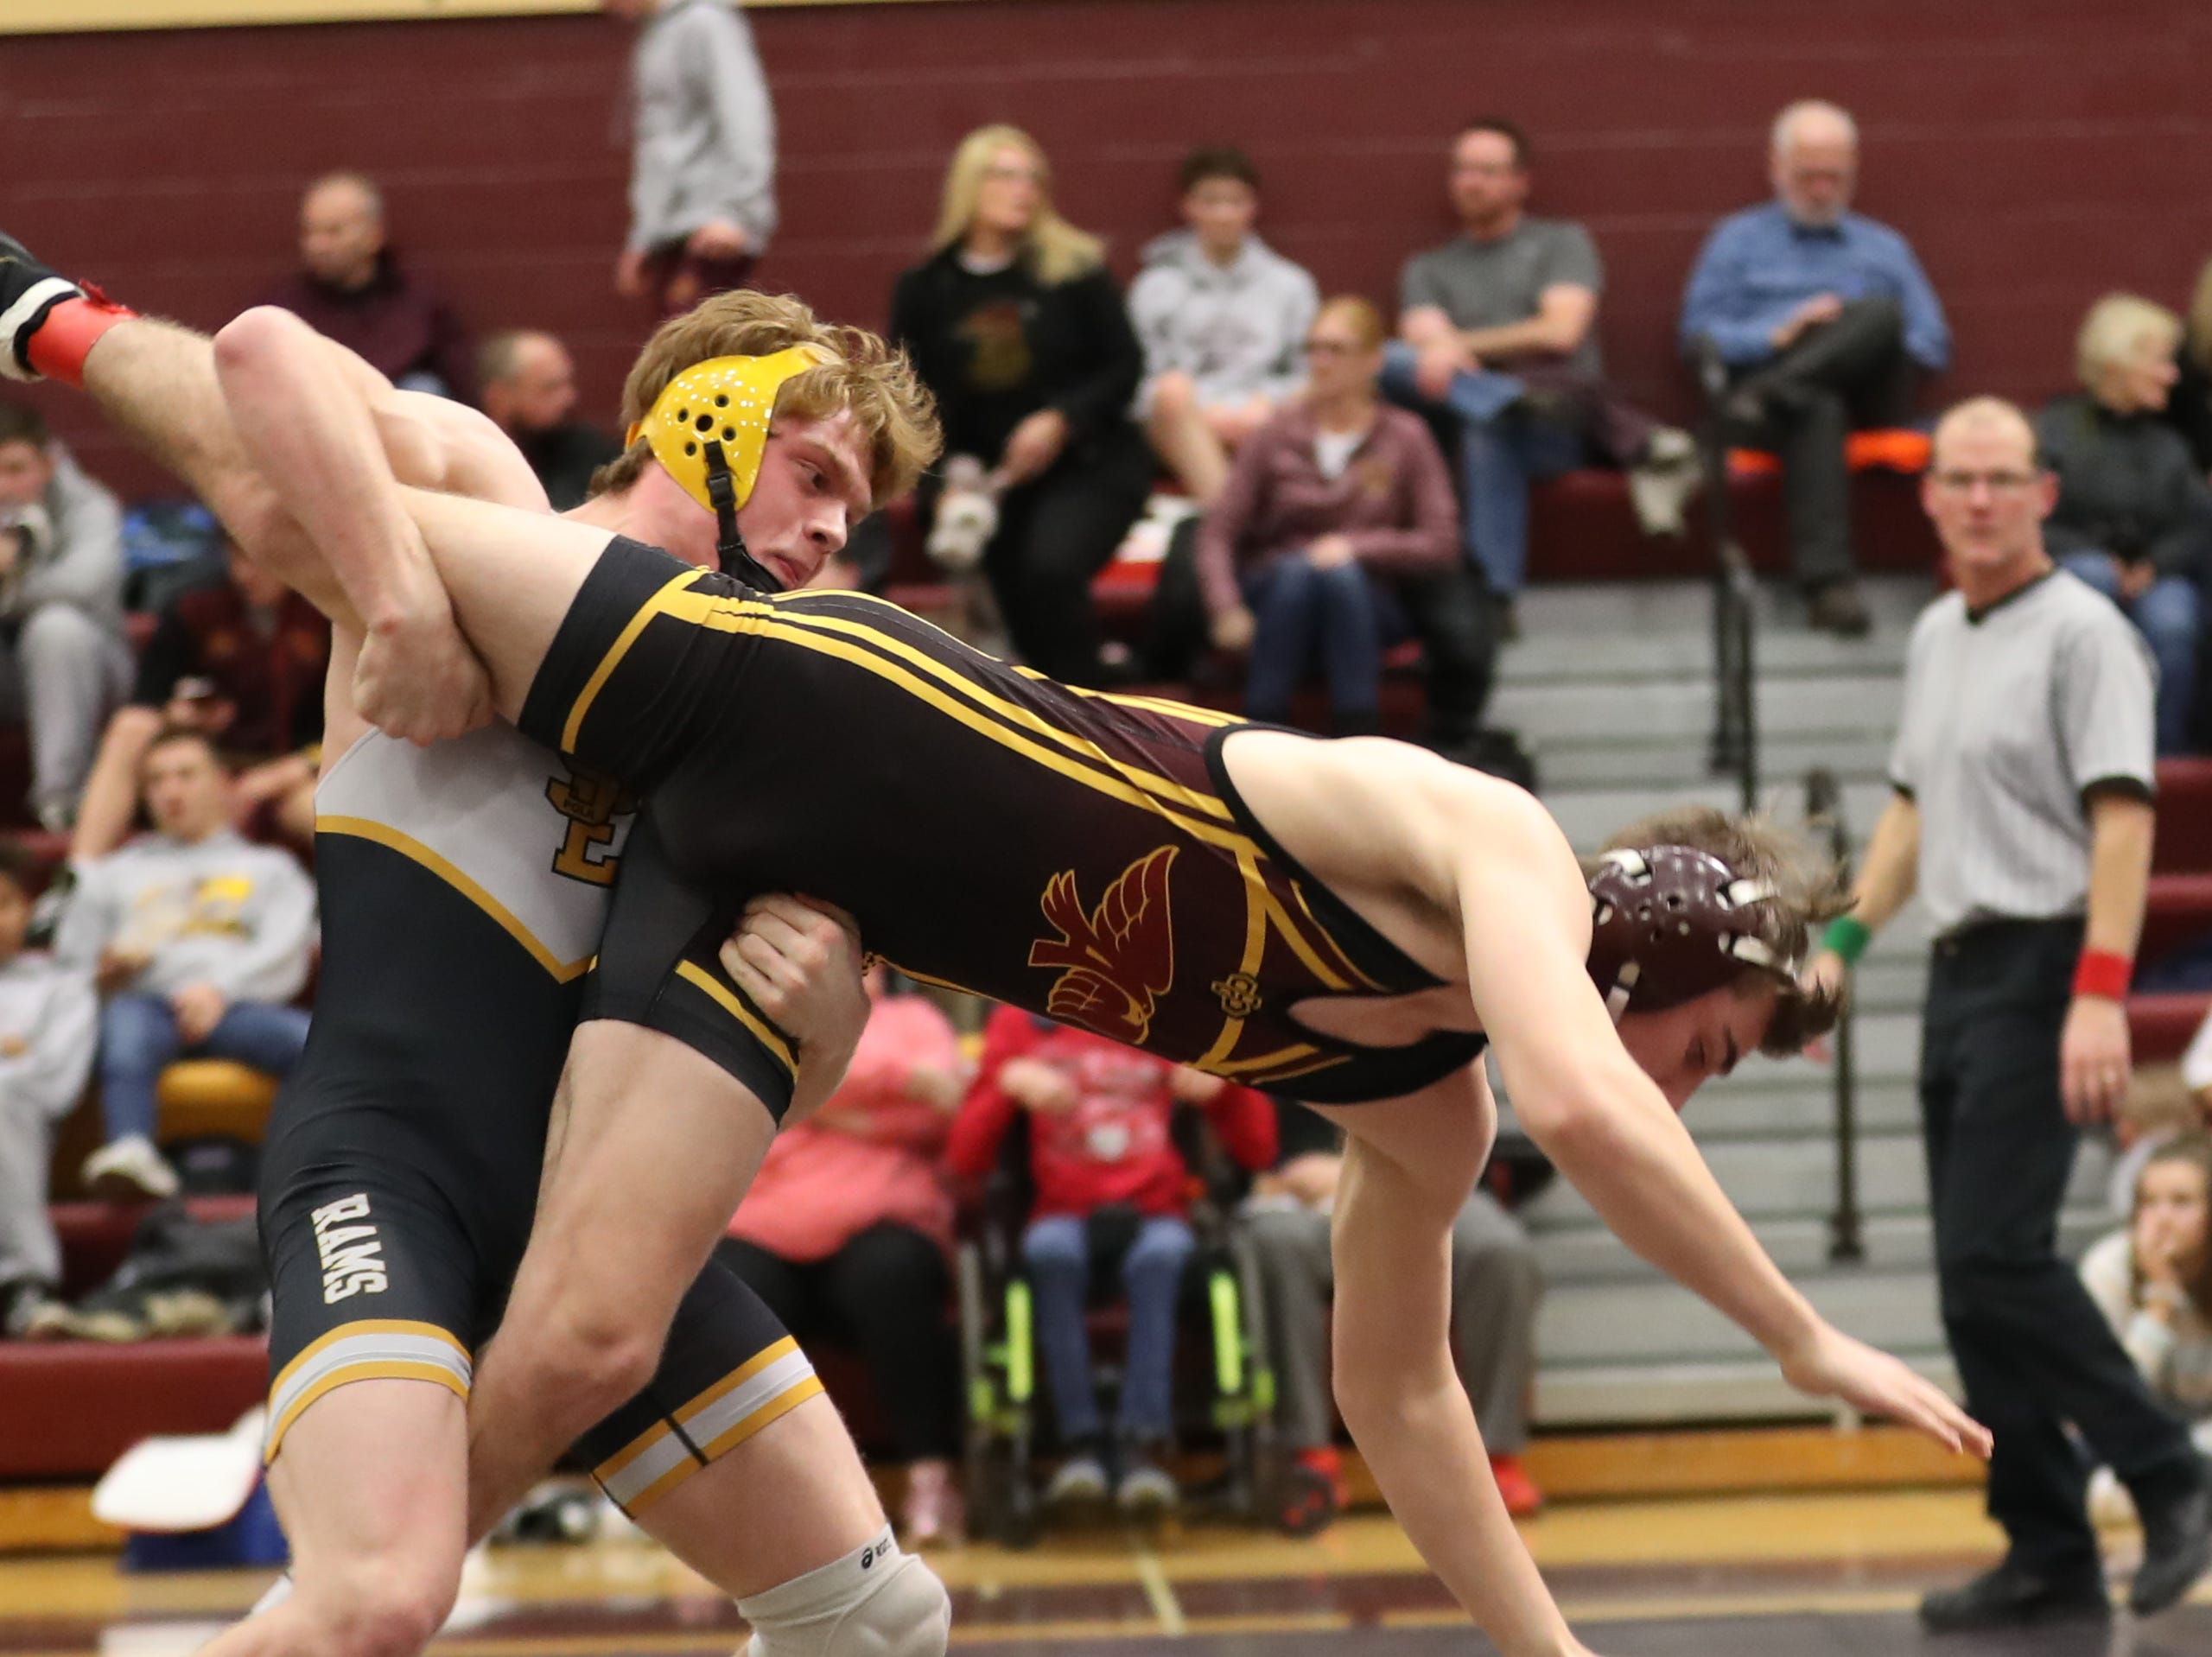 Dec. 4, 2018; Des Moines, IA  USA; Nathan Marchand (Southeast Polk) over Wyatt Carl (Ankeny) (MD 13-4) at Des Moines Lincoln High School. The Rams beat the Hawks 54-14.